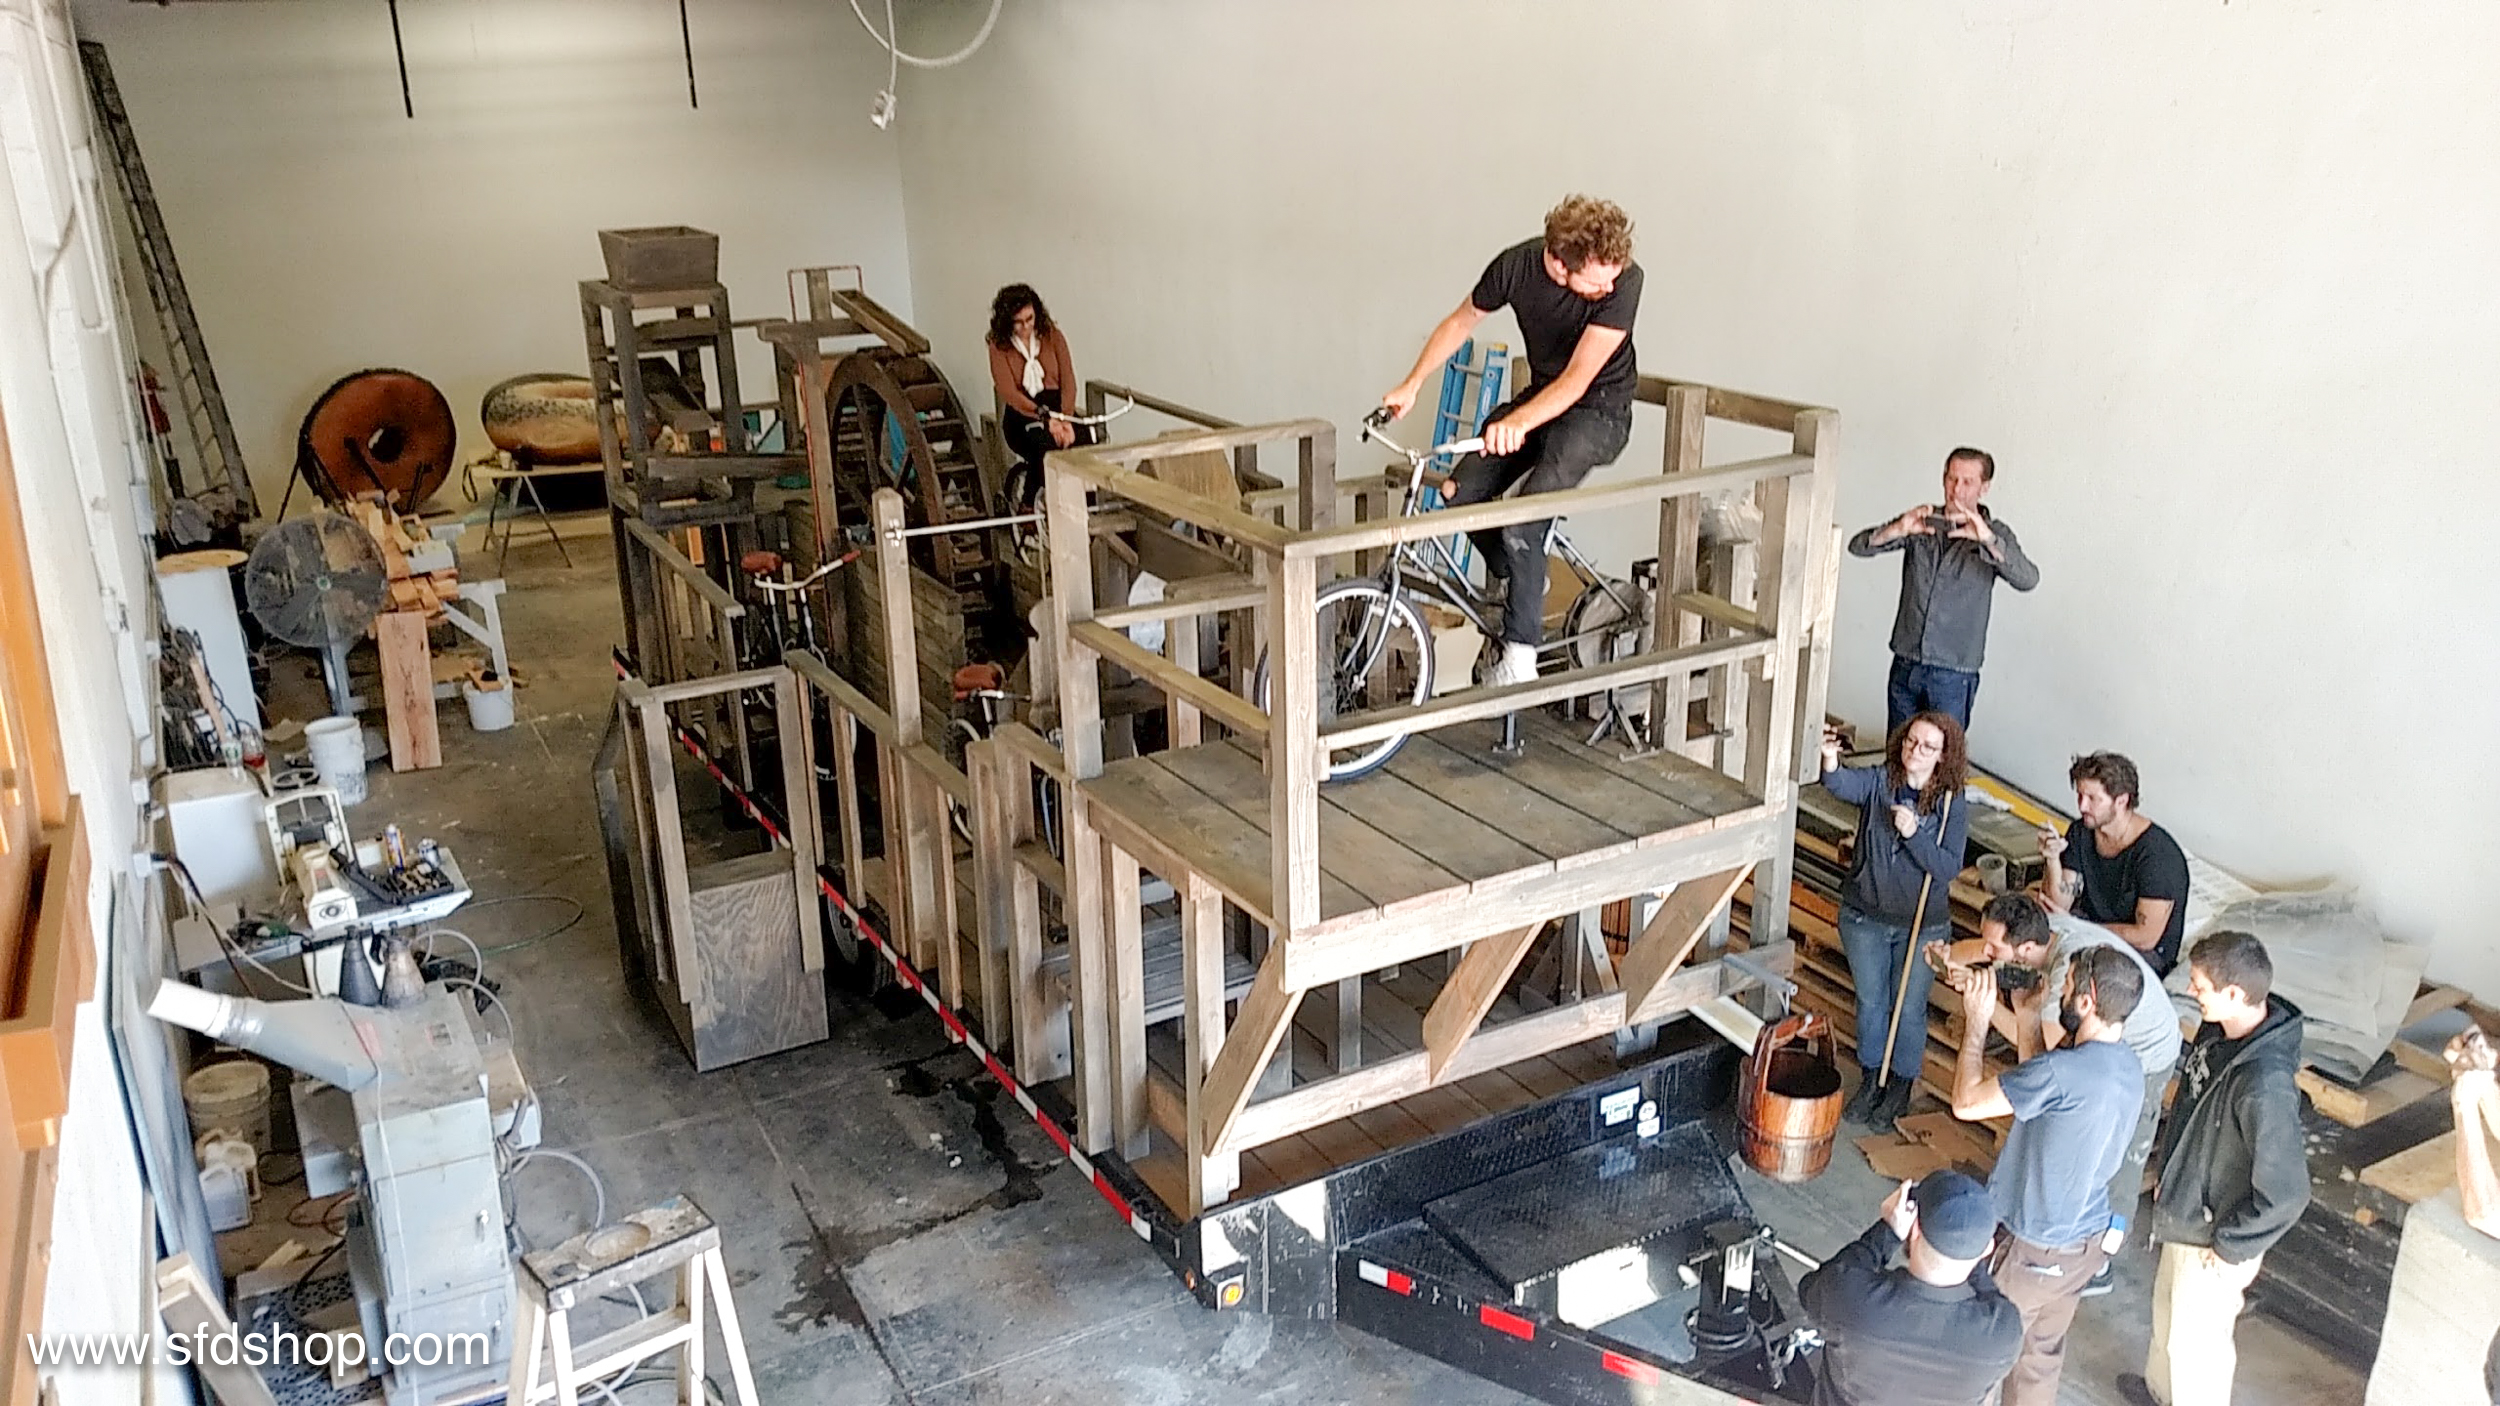 Hill Holliday cider pedal press fabricated by SFDS -8.jpg